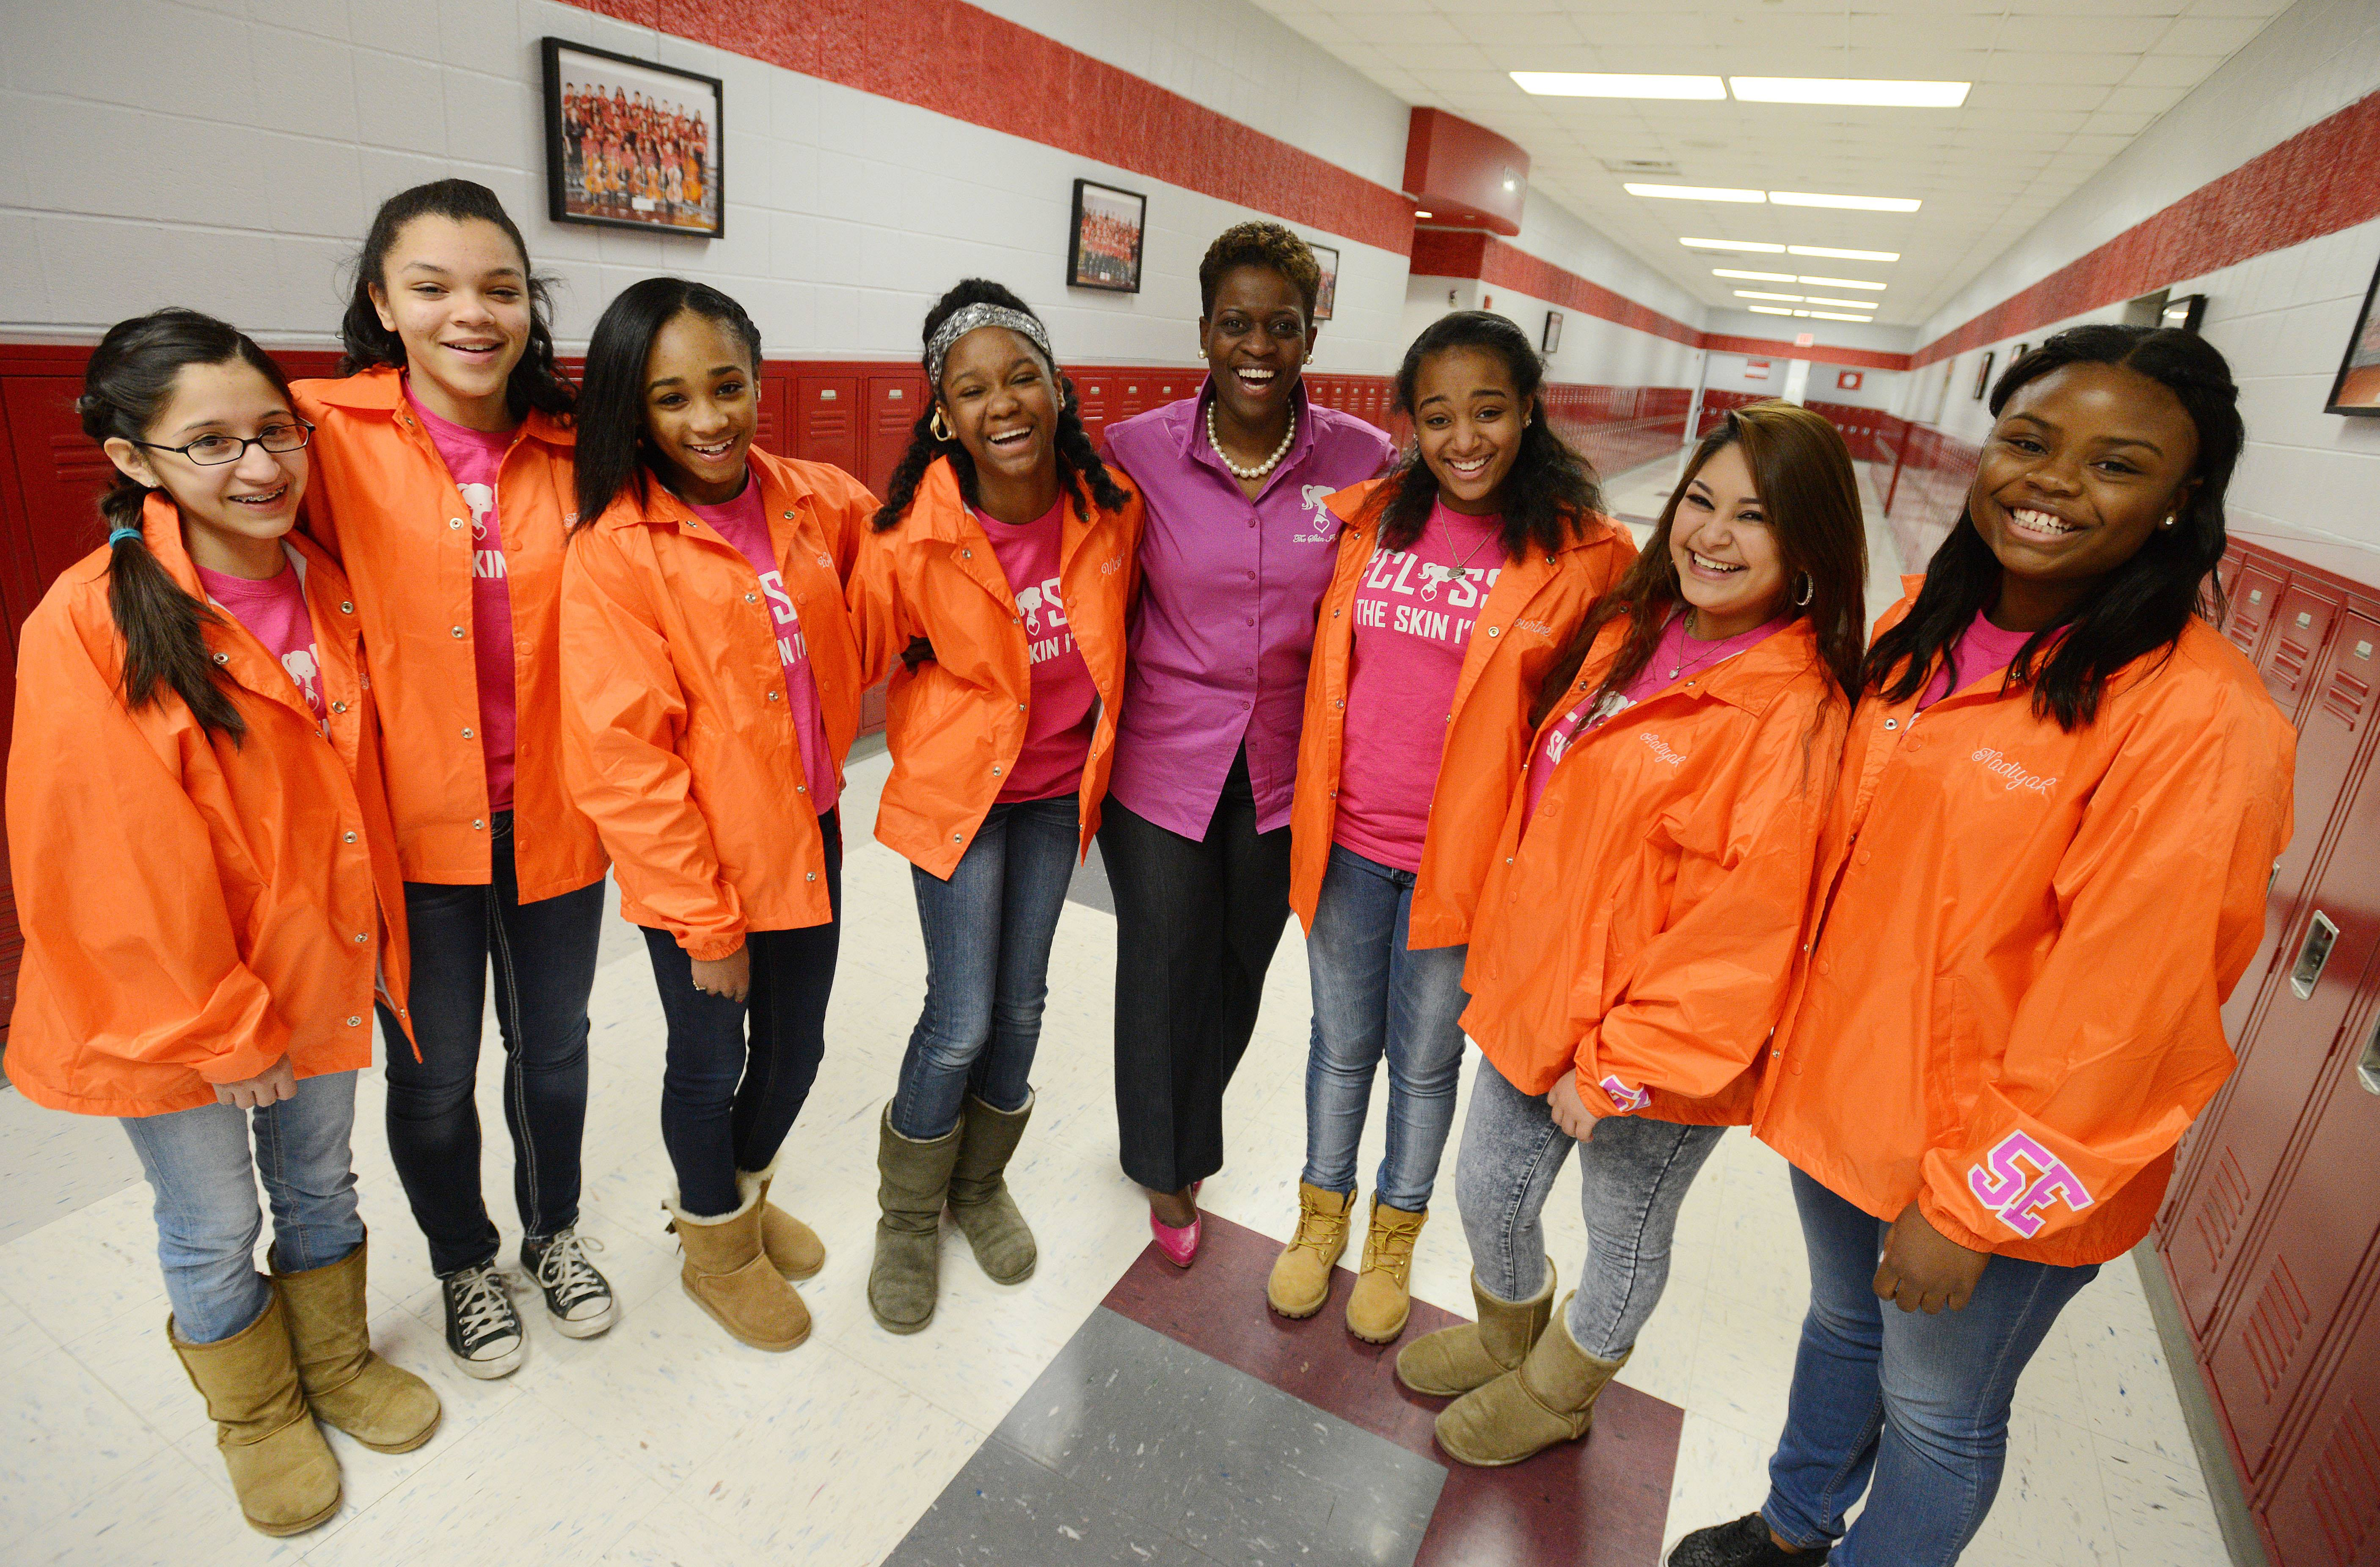 A group of black girls